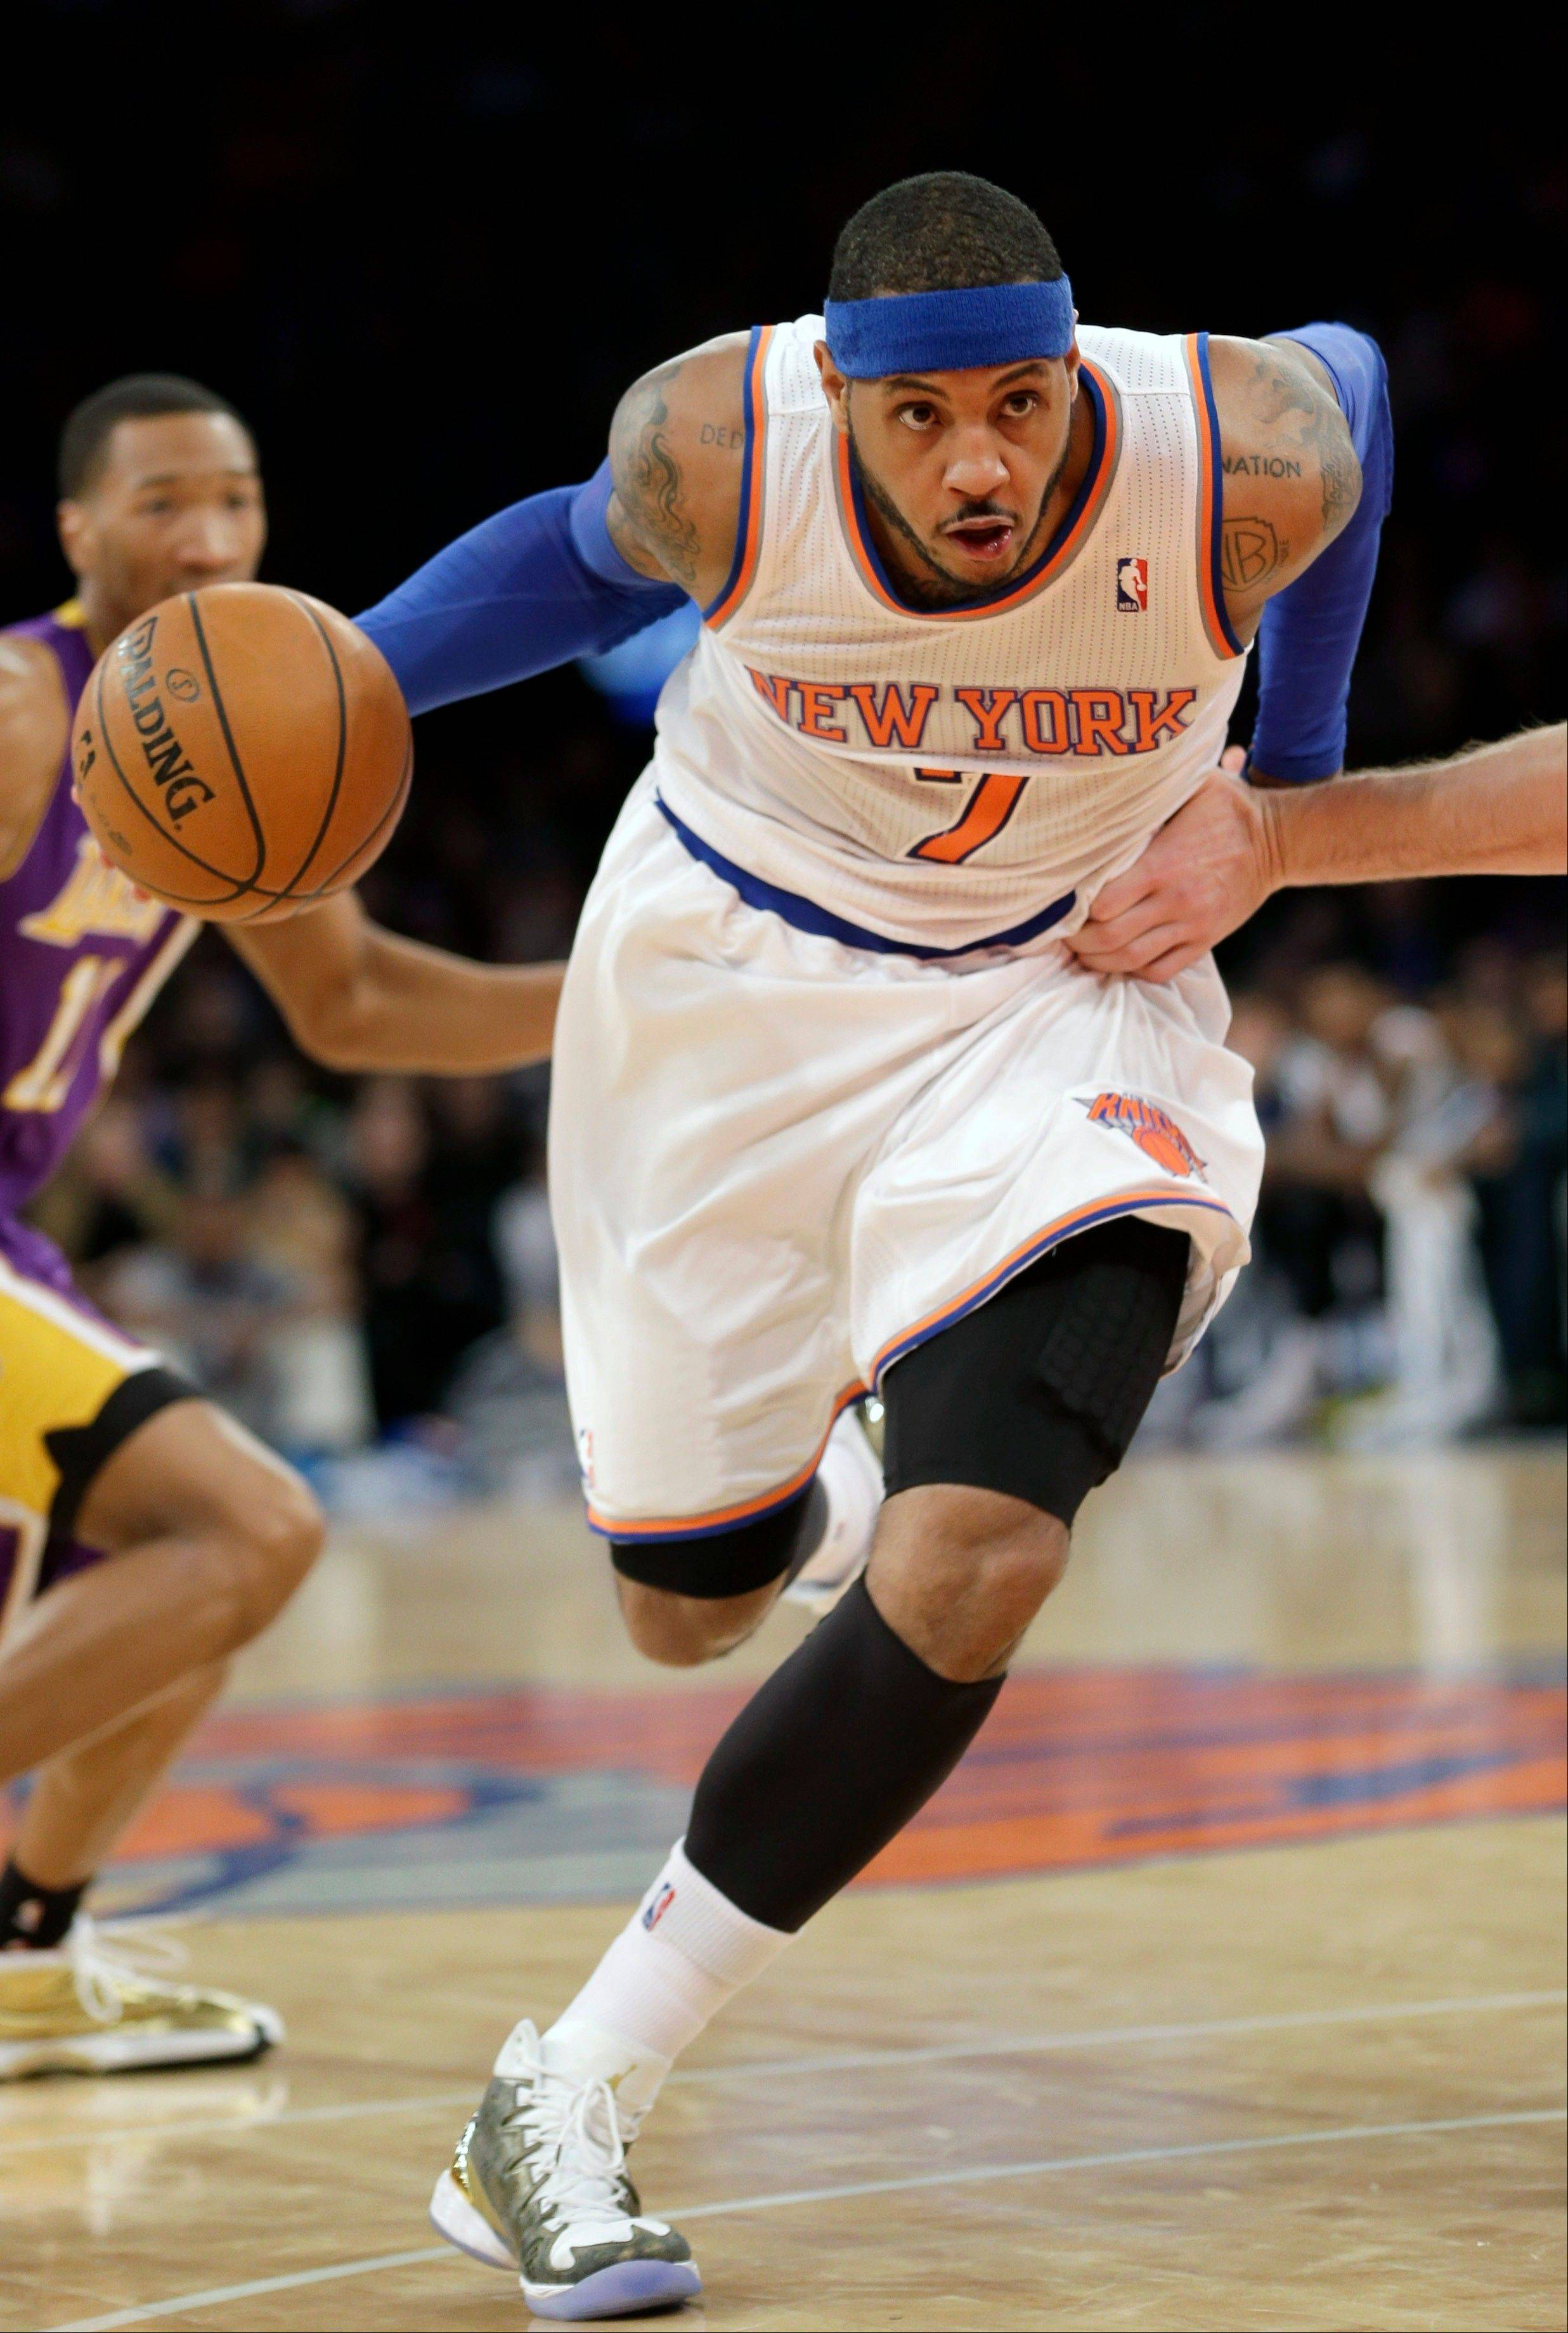 New York Knicks' Carmelo Anthony charges the basket during the second half of an NBA basketball game against the Los Angeles Lakers at Madison Square Garden, Sunday, Jan. 26, 2014, in New York. The Knicks won 110-103.